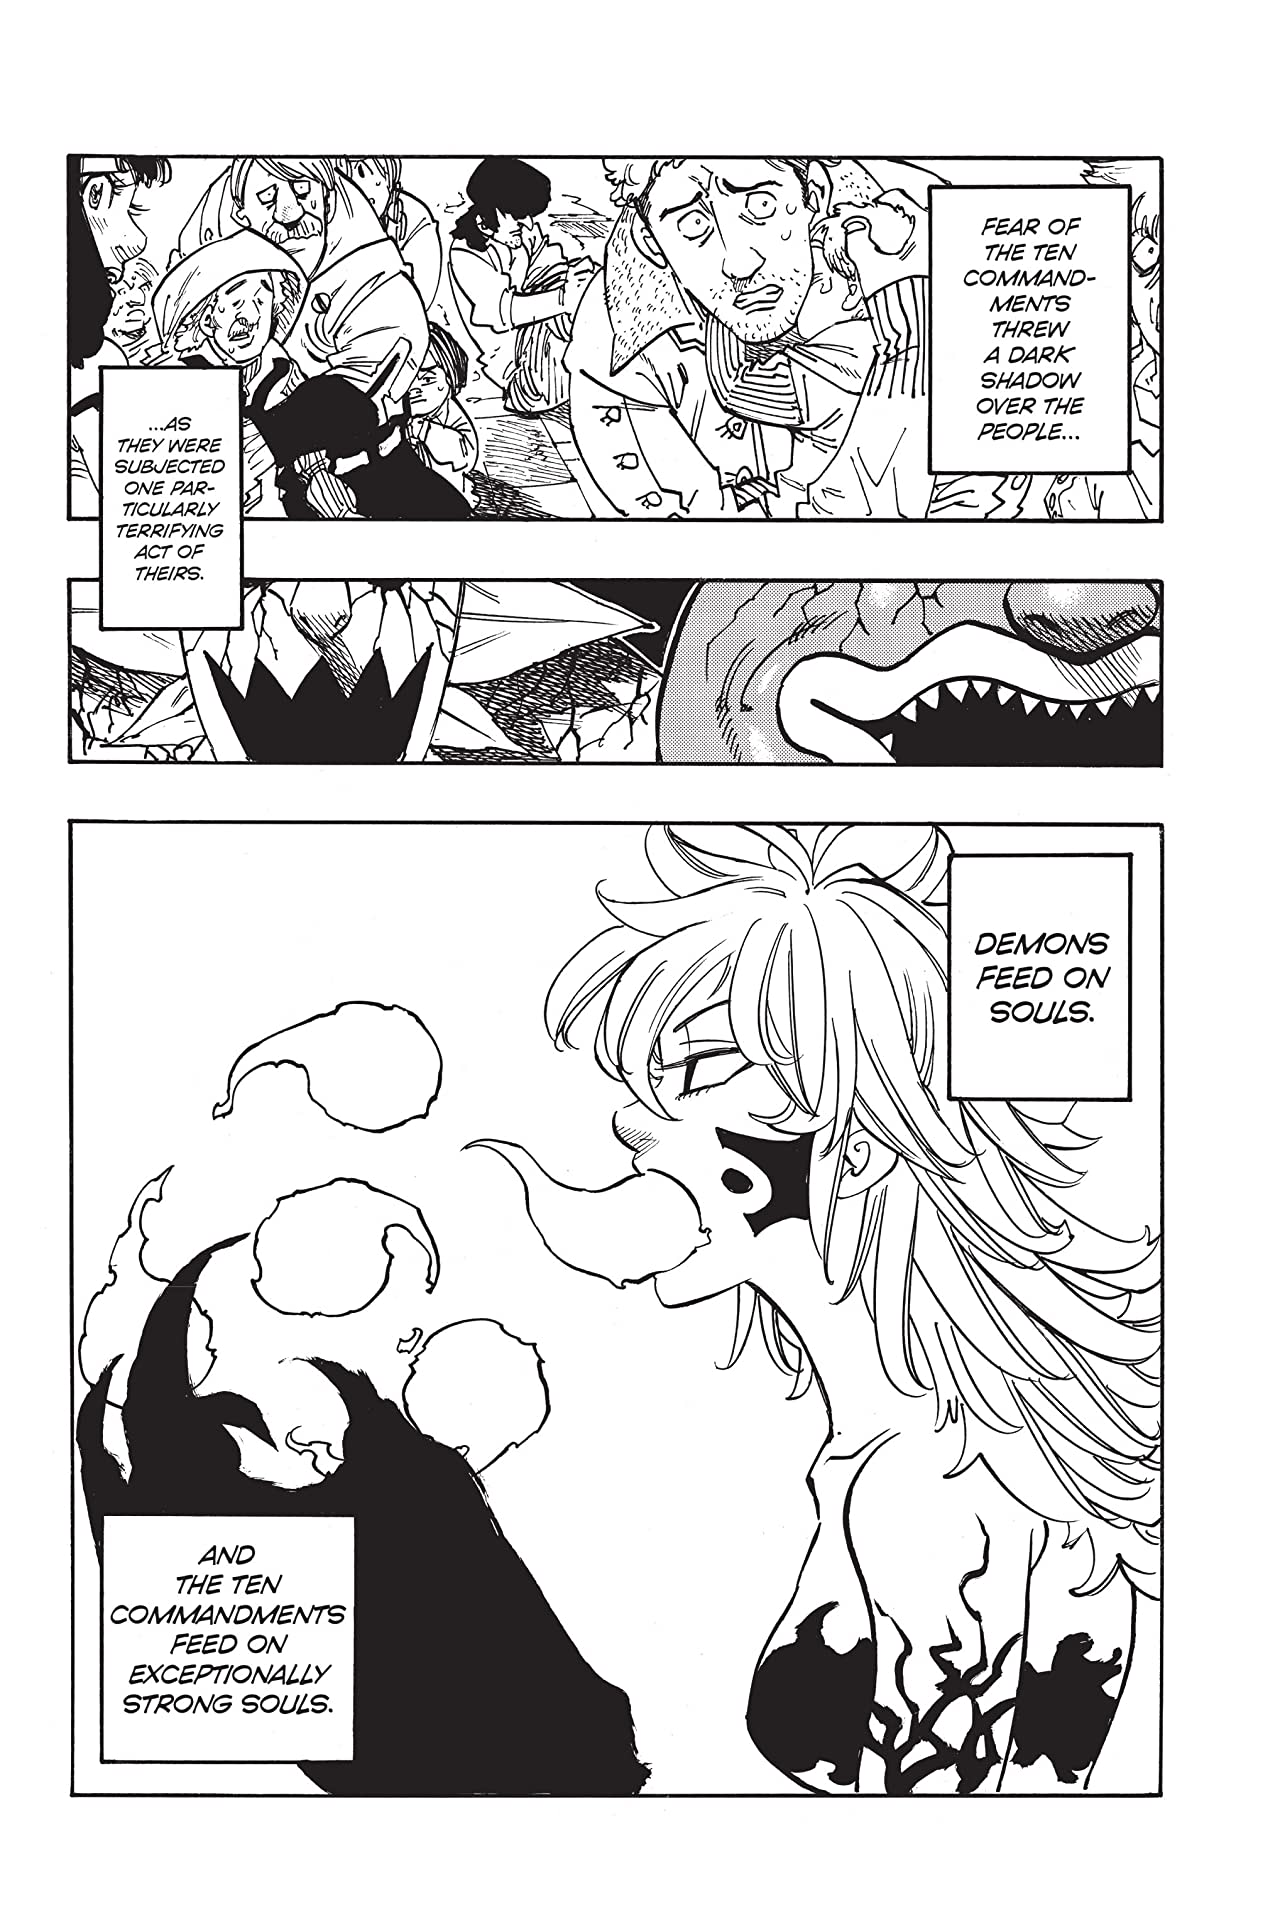 The Seven Deadly Sins #178